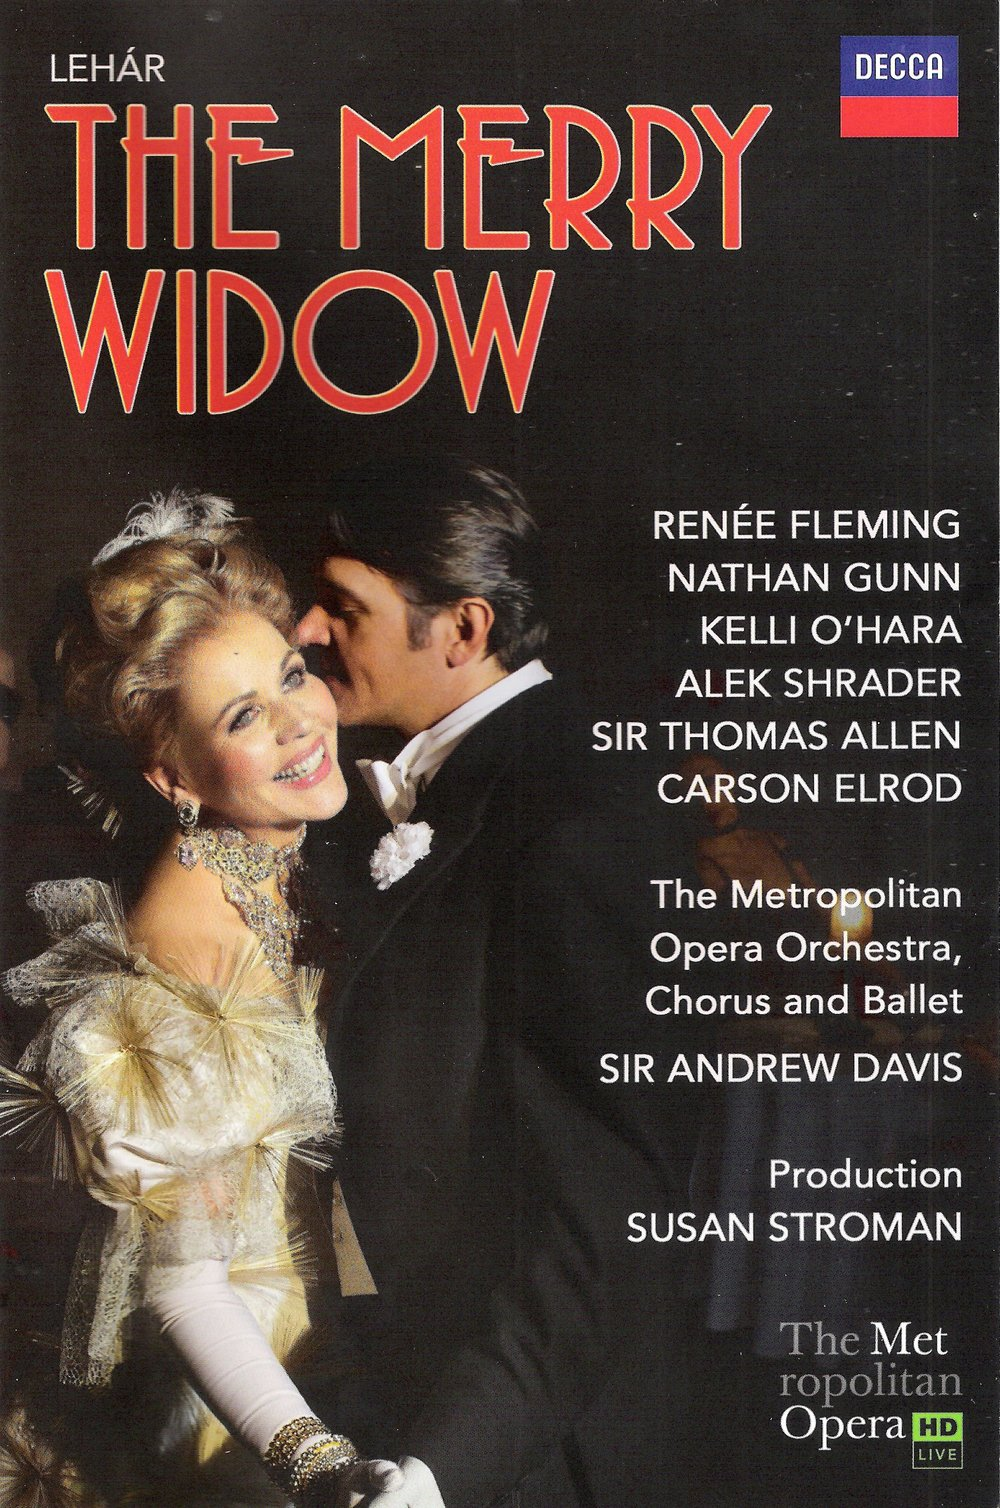 Fleming and Gunn star in the Met's The Merry Widow